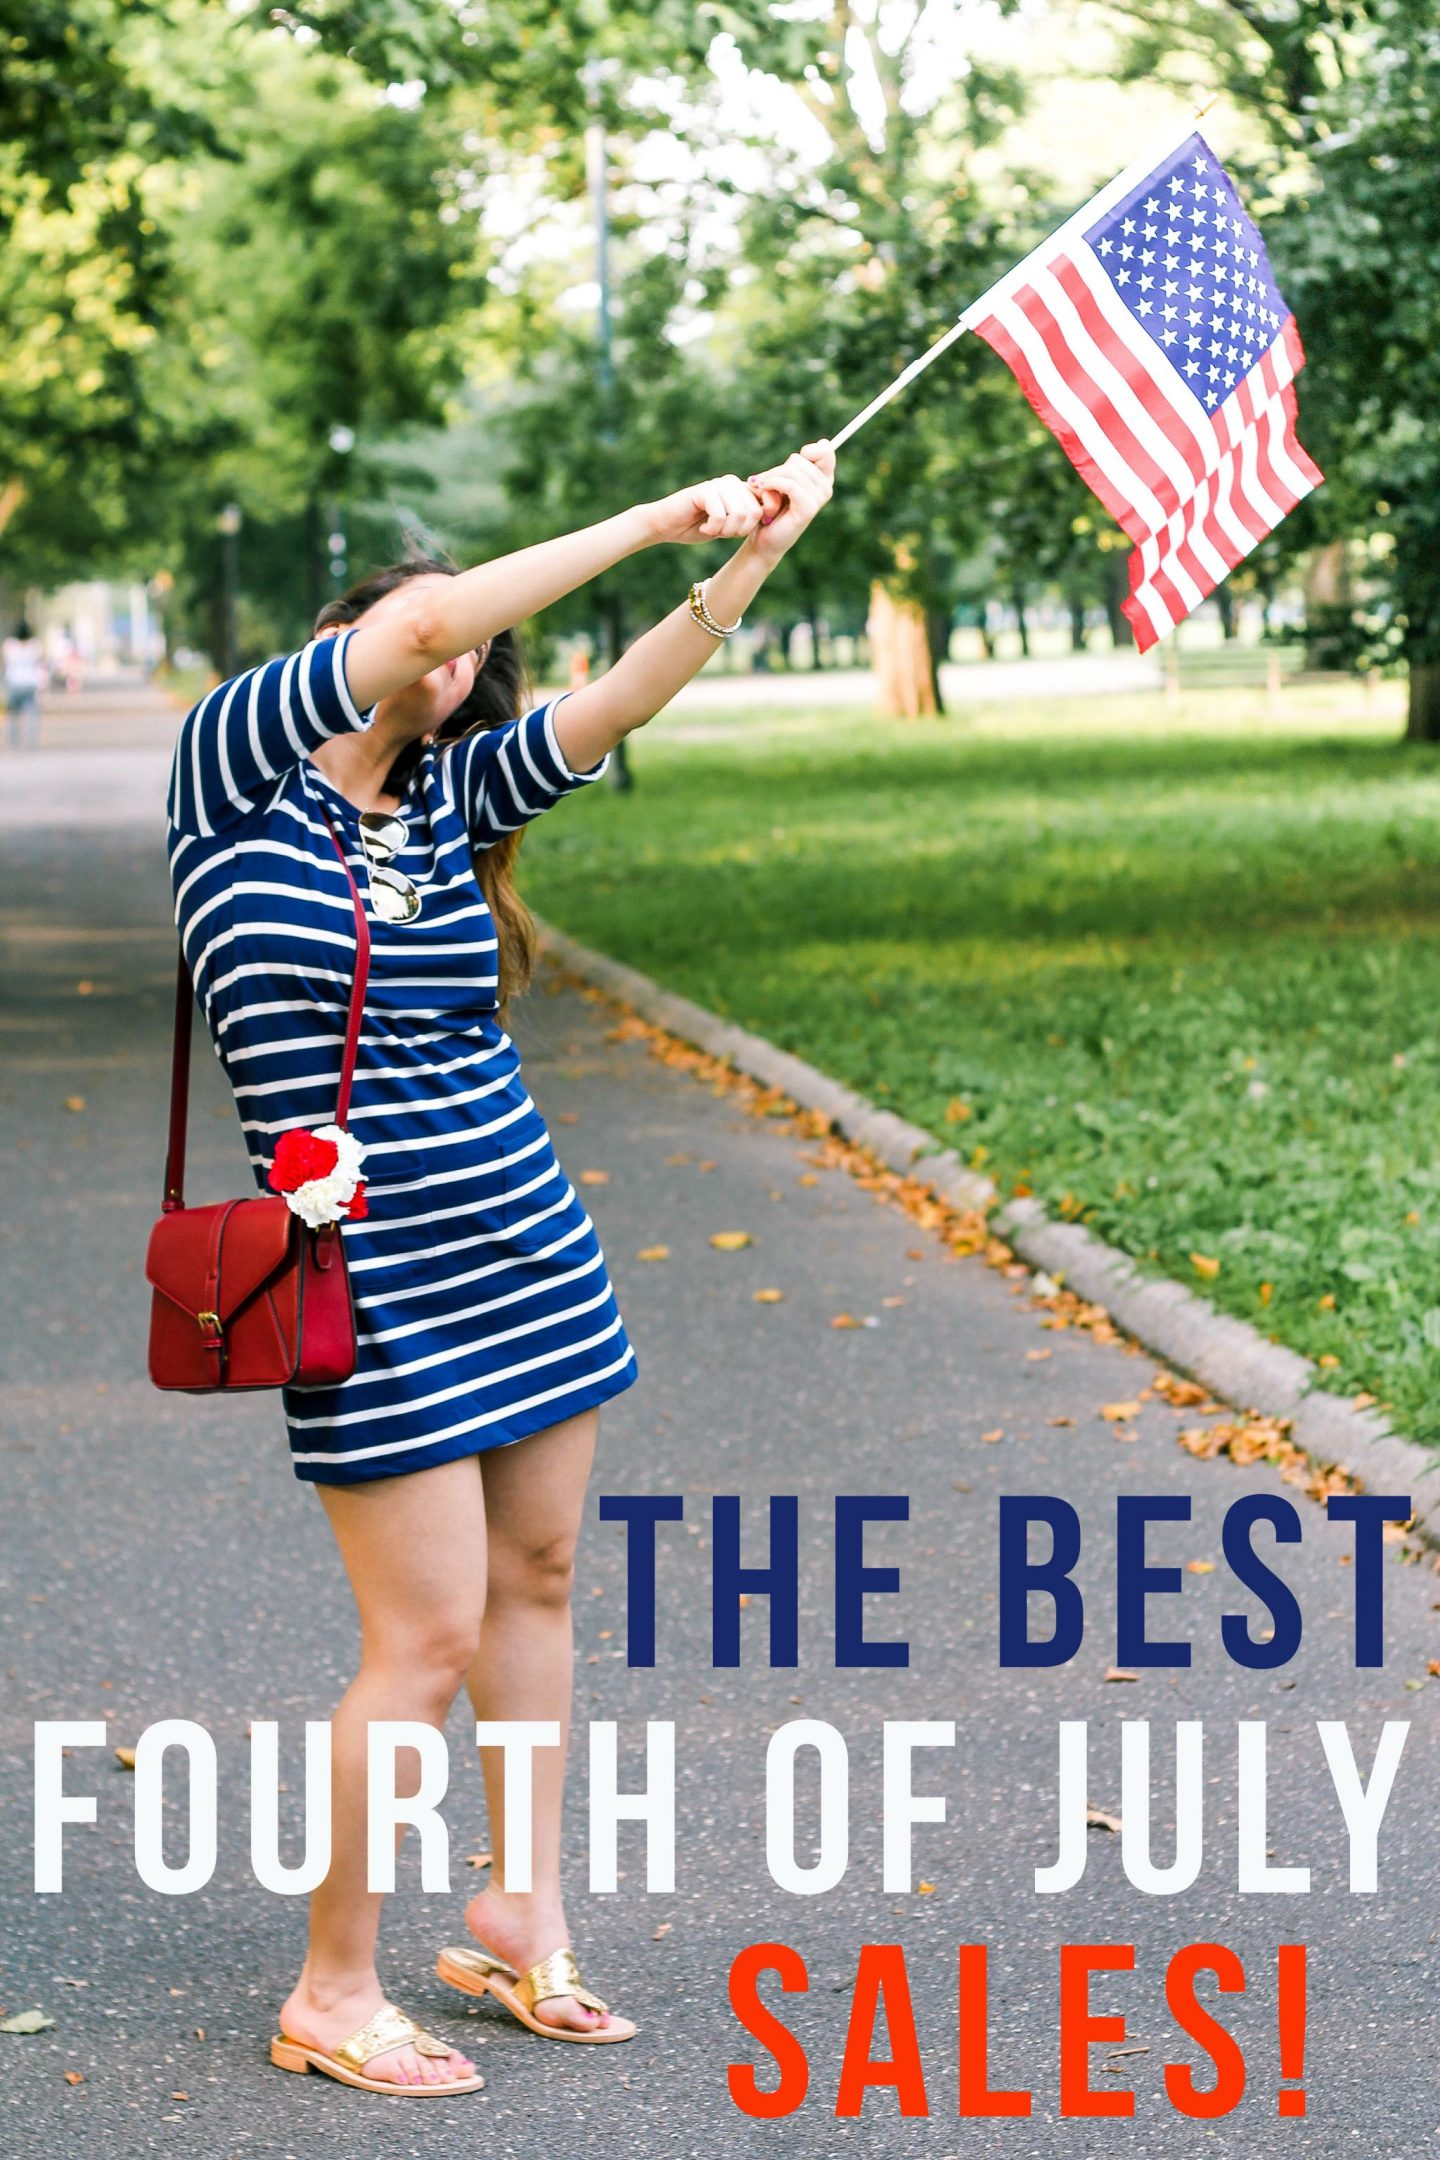 The Best Fourth of July Sales Roundup